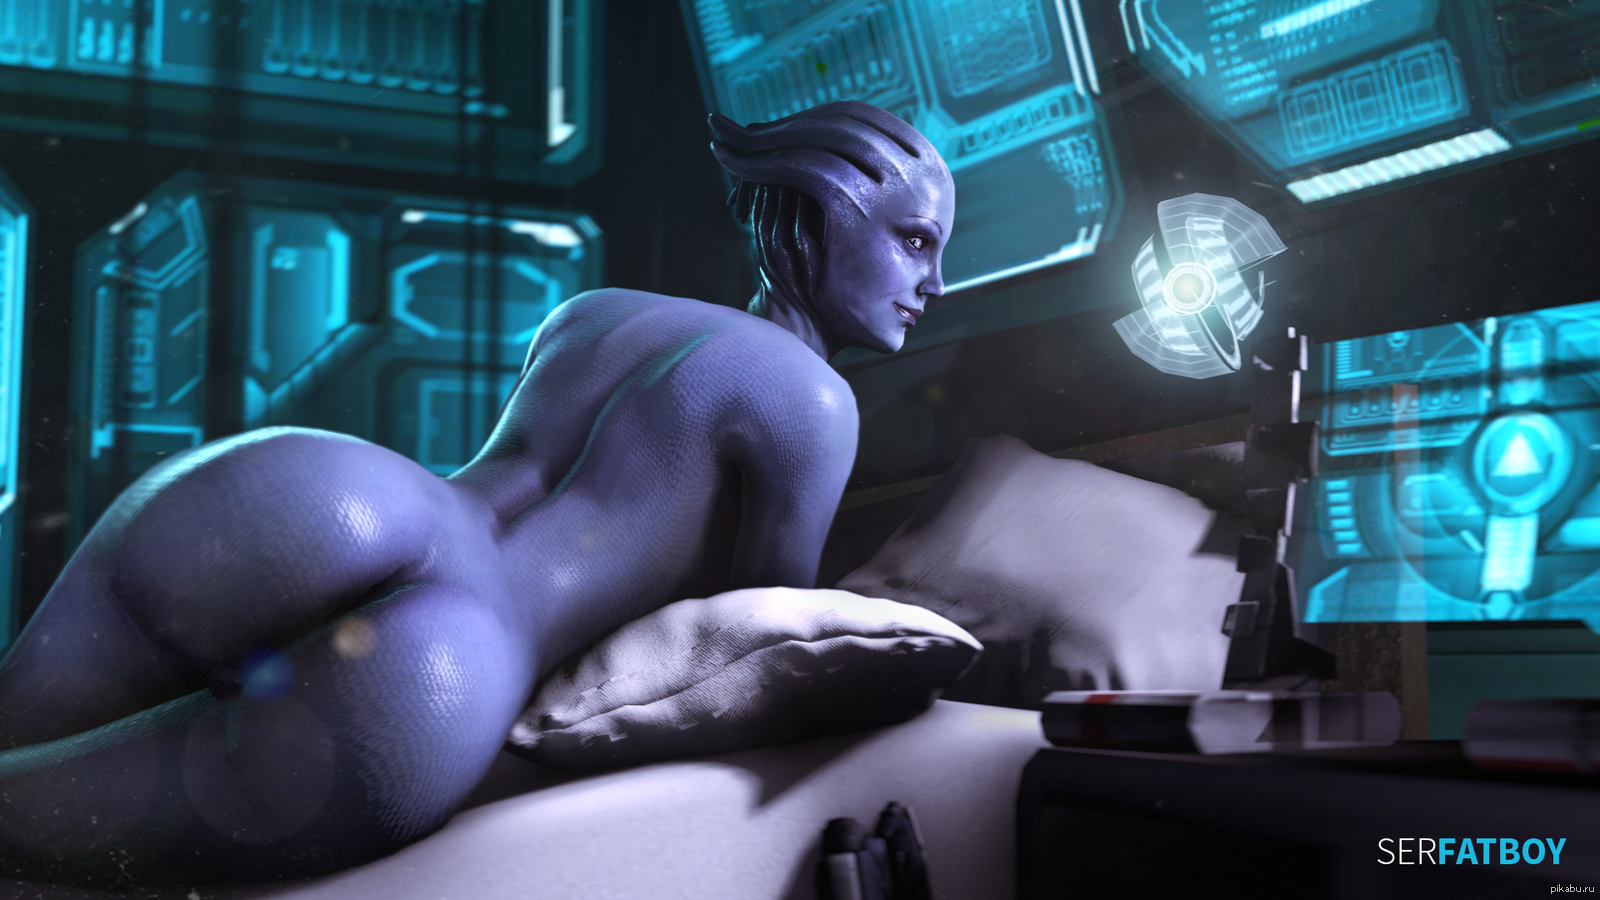 Mass effect liara is sexy porn naked videos